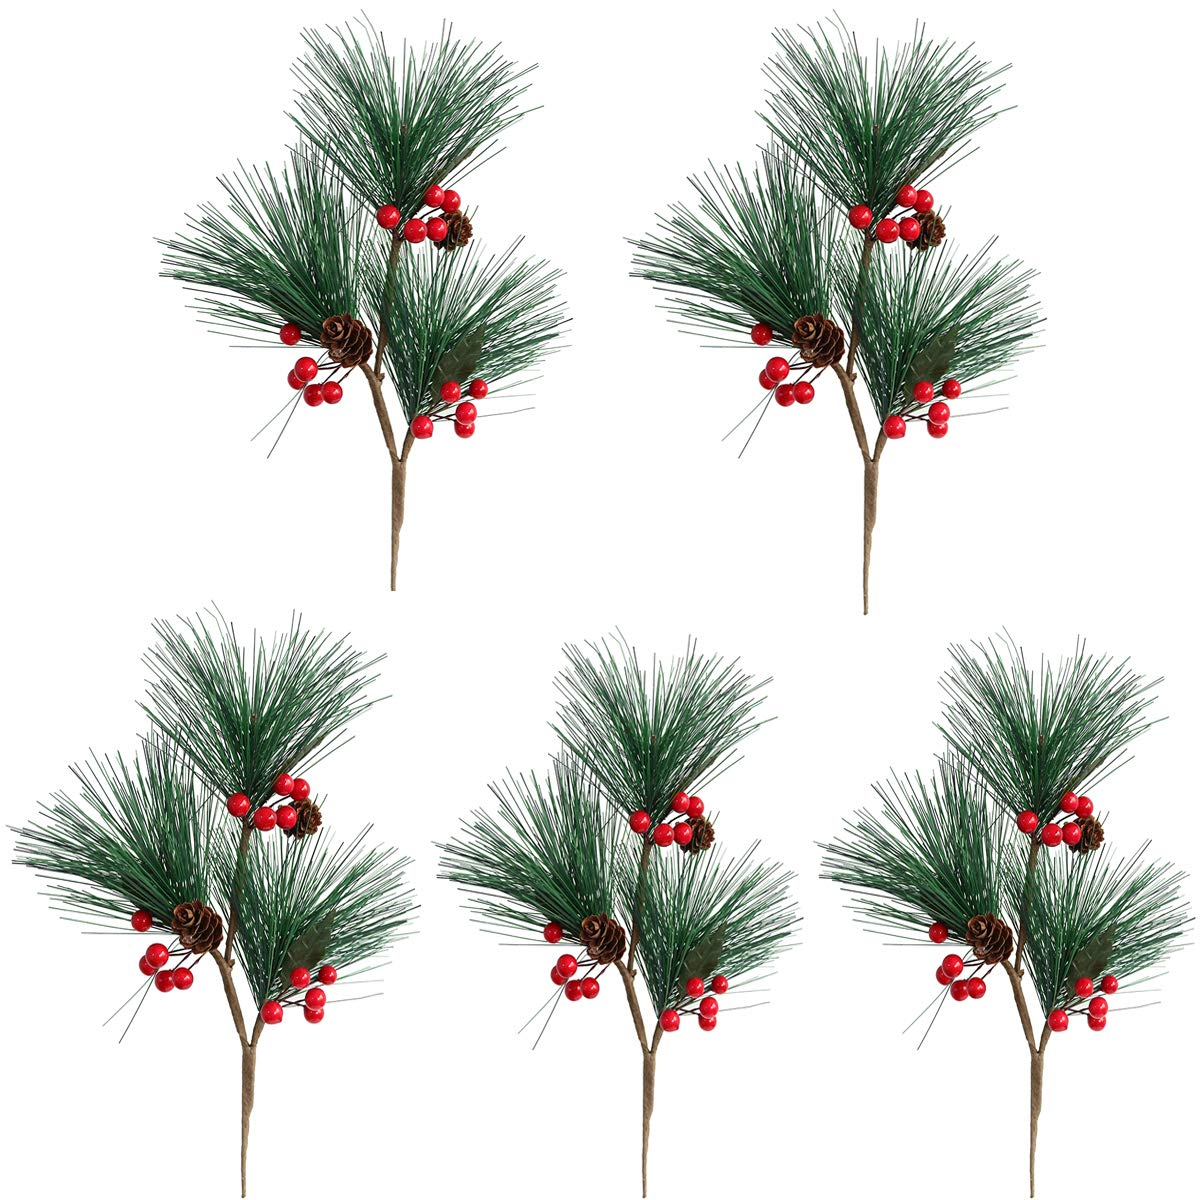 MUFEN 5pcs Artificial Pine Picks Pinecone Red Berries Branches Faux Greenery Foliage Flower Crown Christmas Tree Decoration Holiday Home Winter Decor (Green)